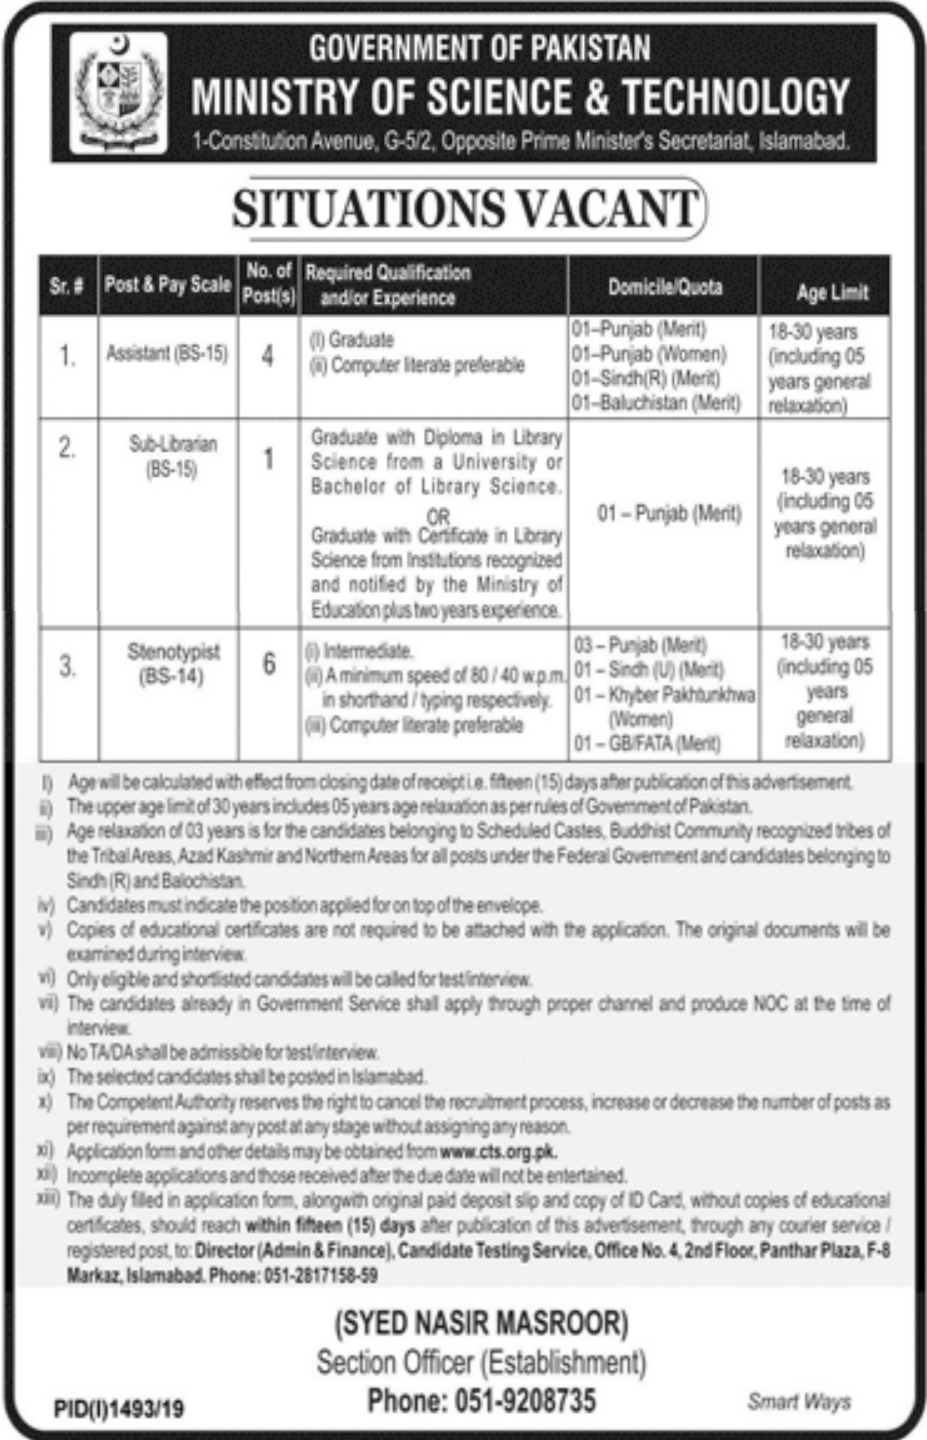 Ministry of Science & Technology Jobs 2019 CTS Application Form